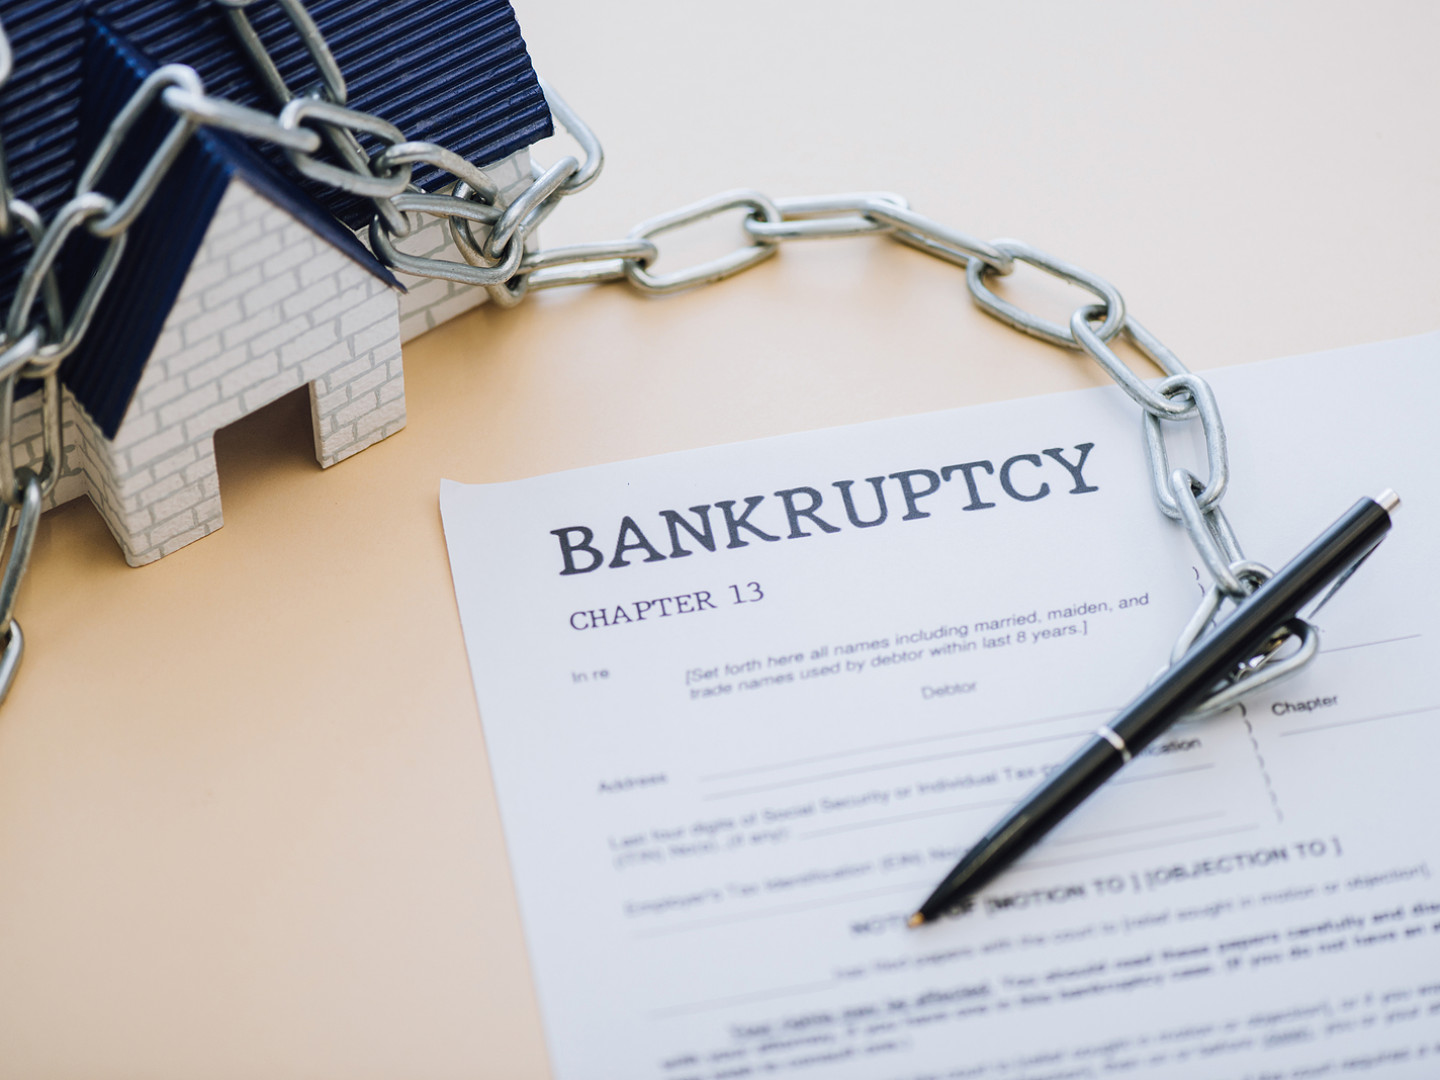 The benefits of Chapter 13 bankruptcy